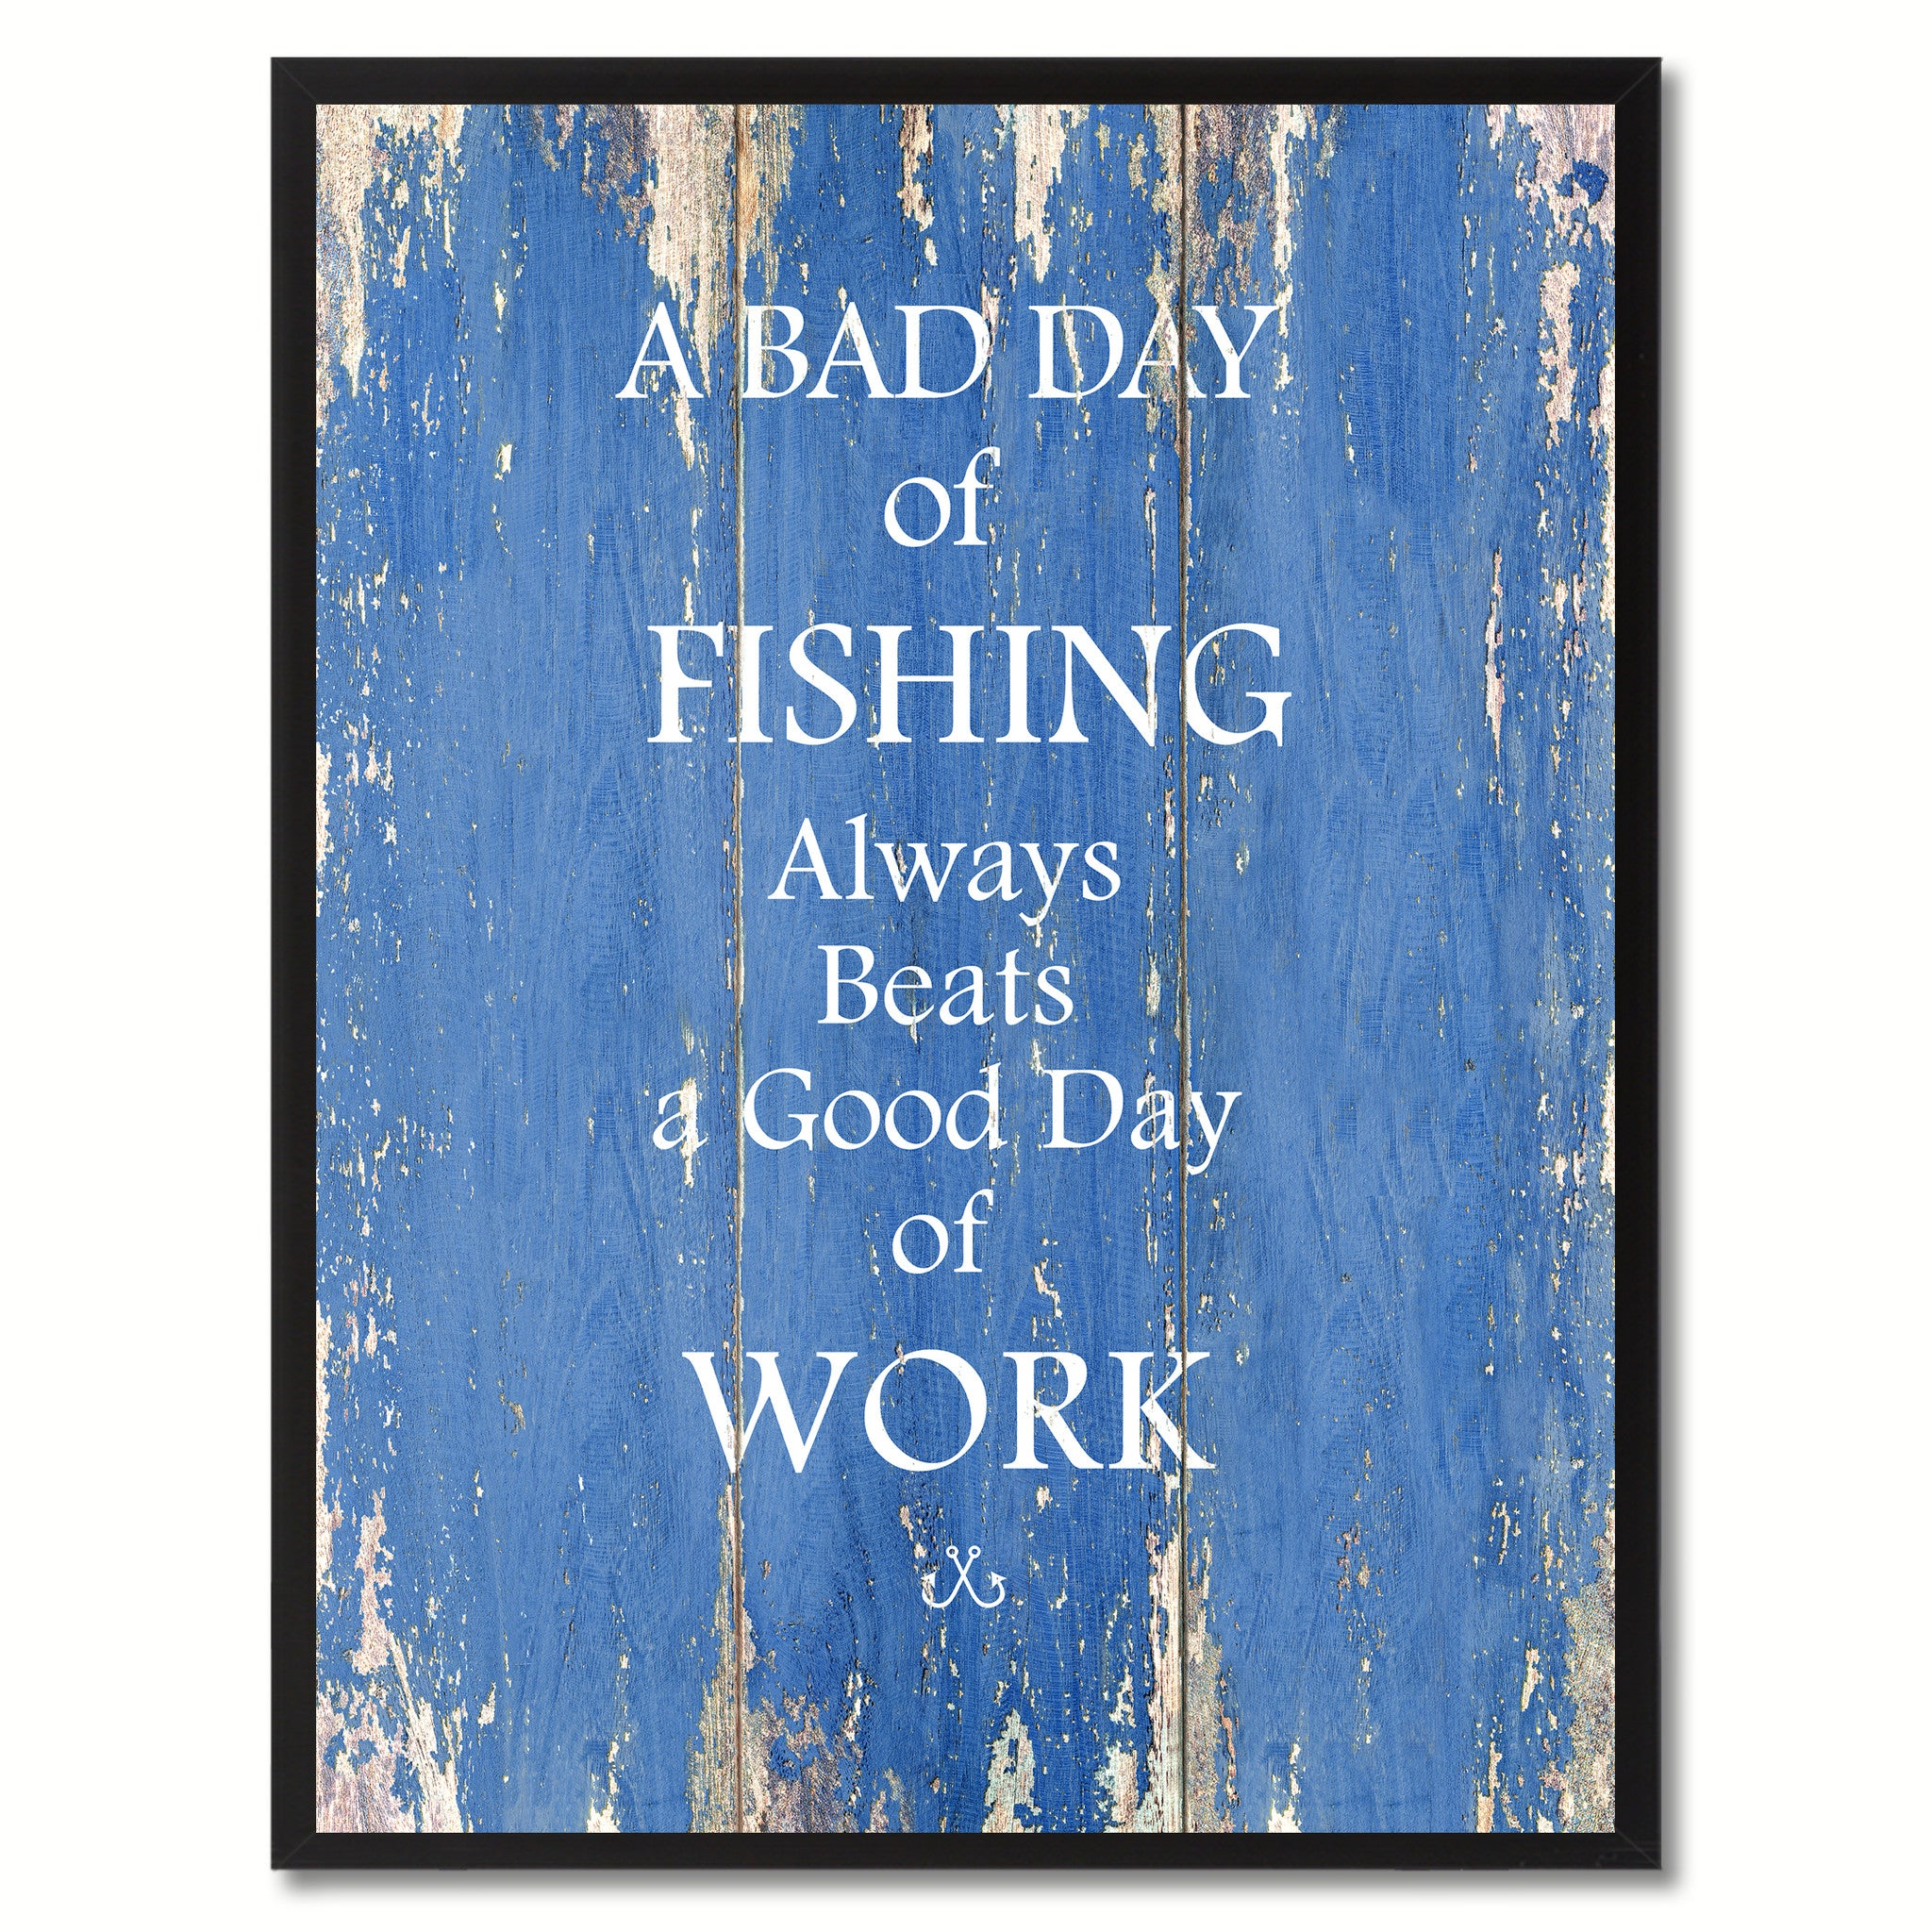 A Bad Day Of Fishing Funny Quote Saying Gifts Home Decor Wall Art Signs Accessories Canvas Print Custom Picture Frame SpotColorArt